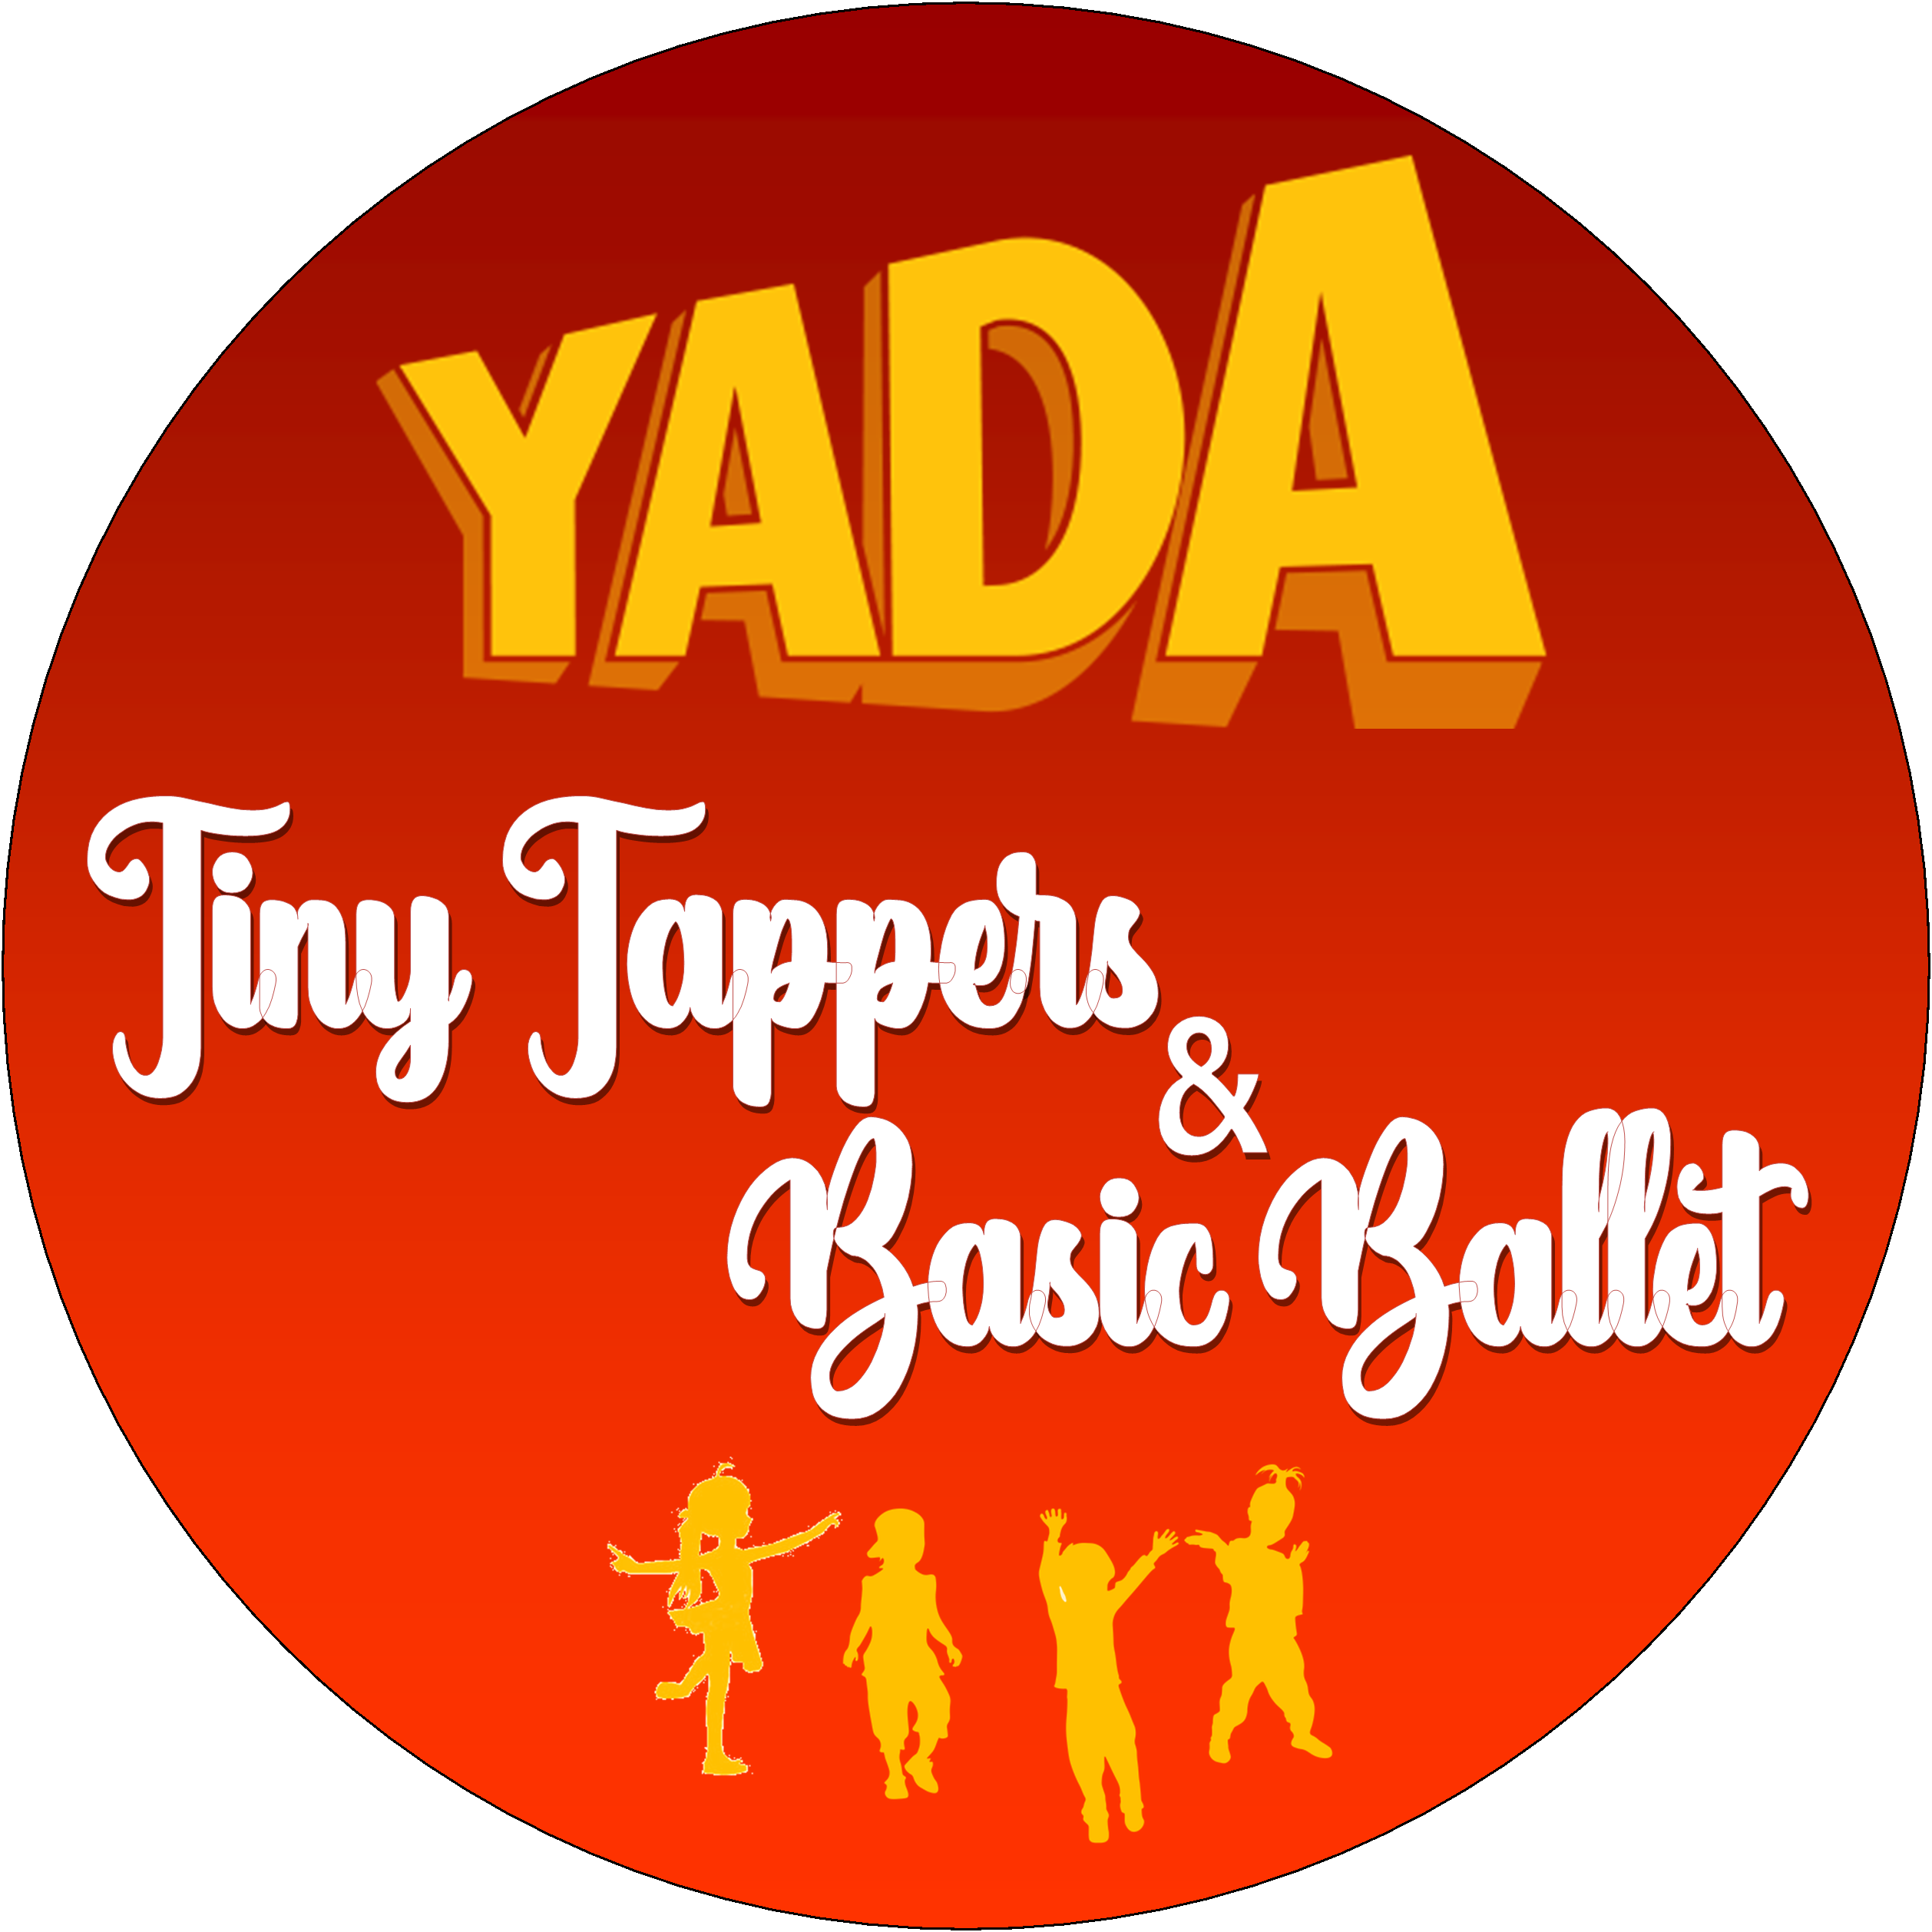 YADA Tiny Tappers and Basic Ballet no tag line logo